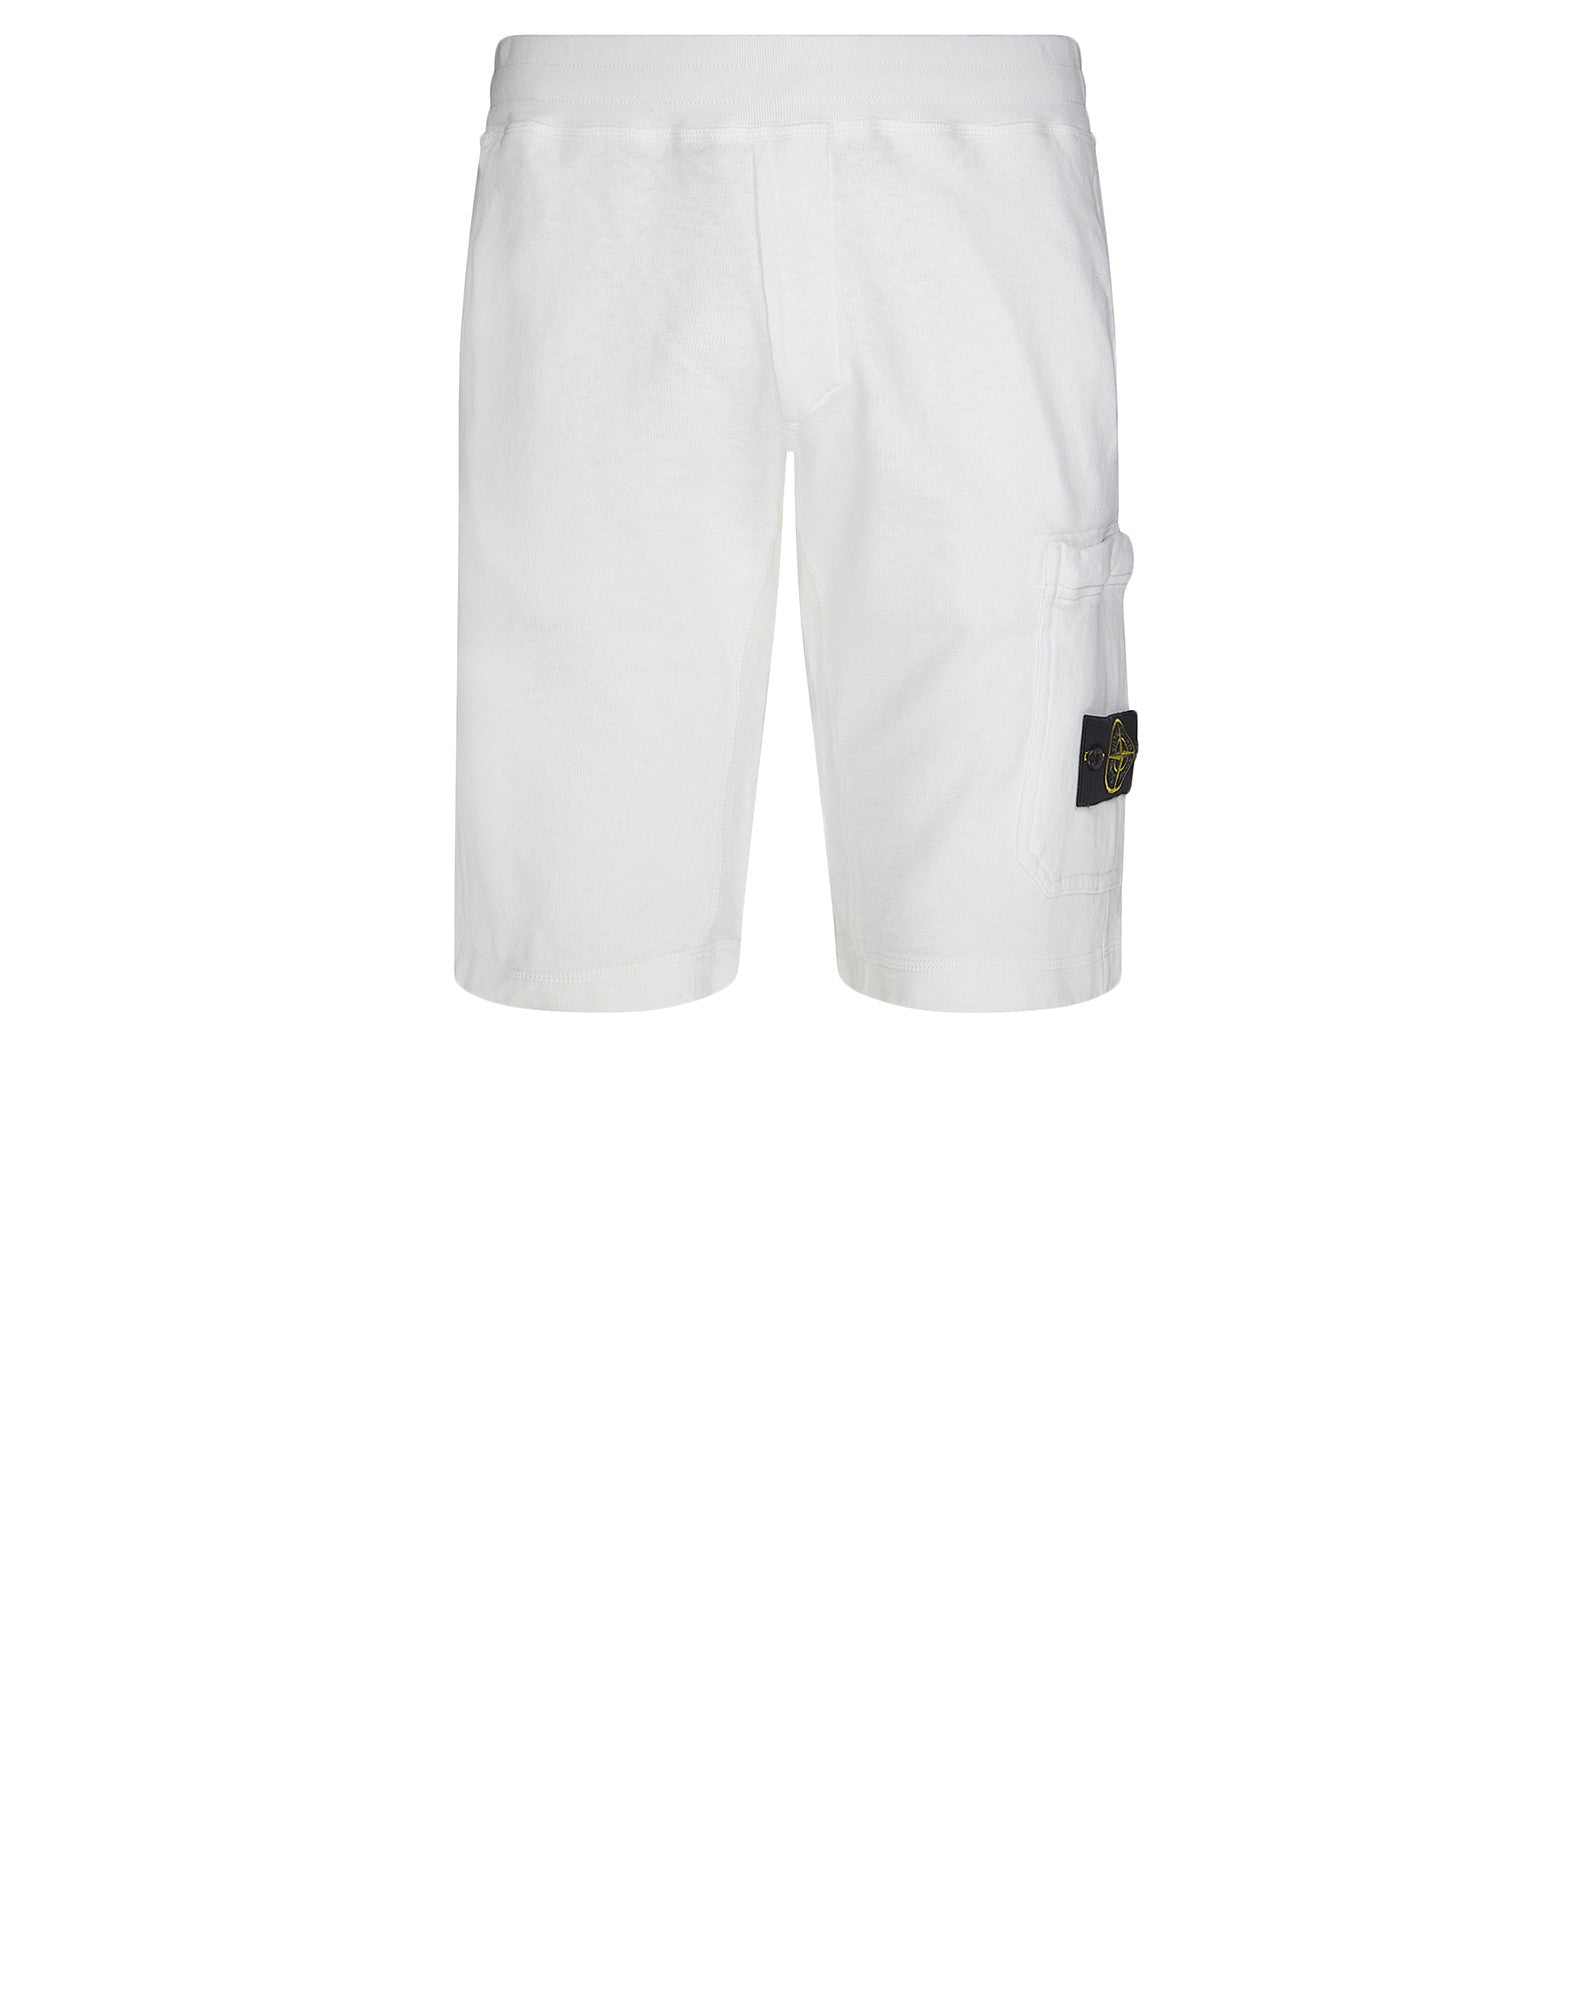 66360 T.CO+OLD Fleece Shorts in White